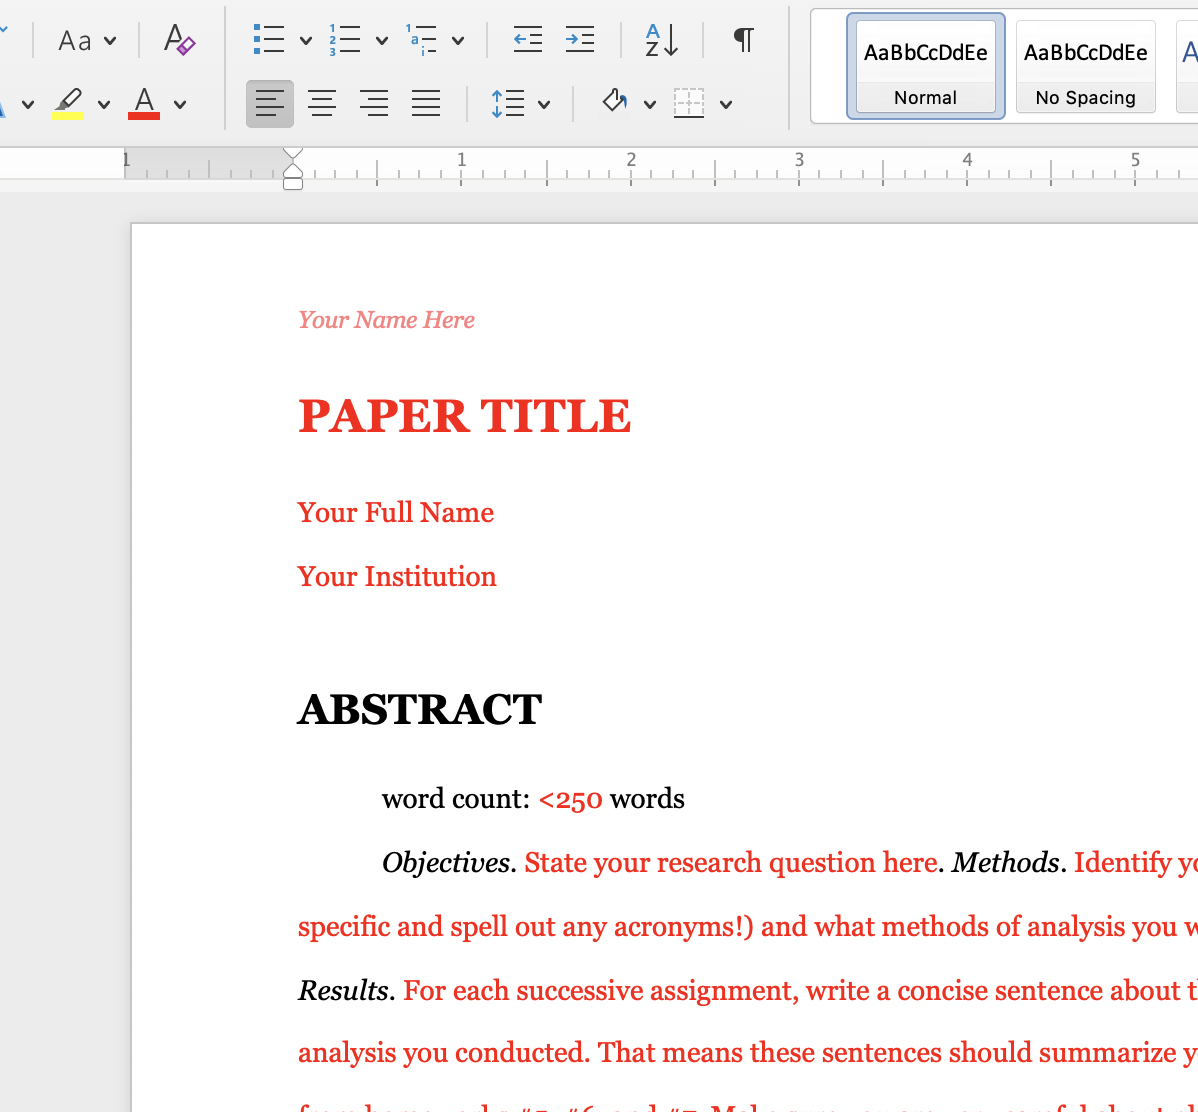 My research paper template (in the style of academic journal article) for undergraduate sociology majors and minors in my research design and statistical analysis course.